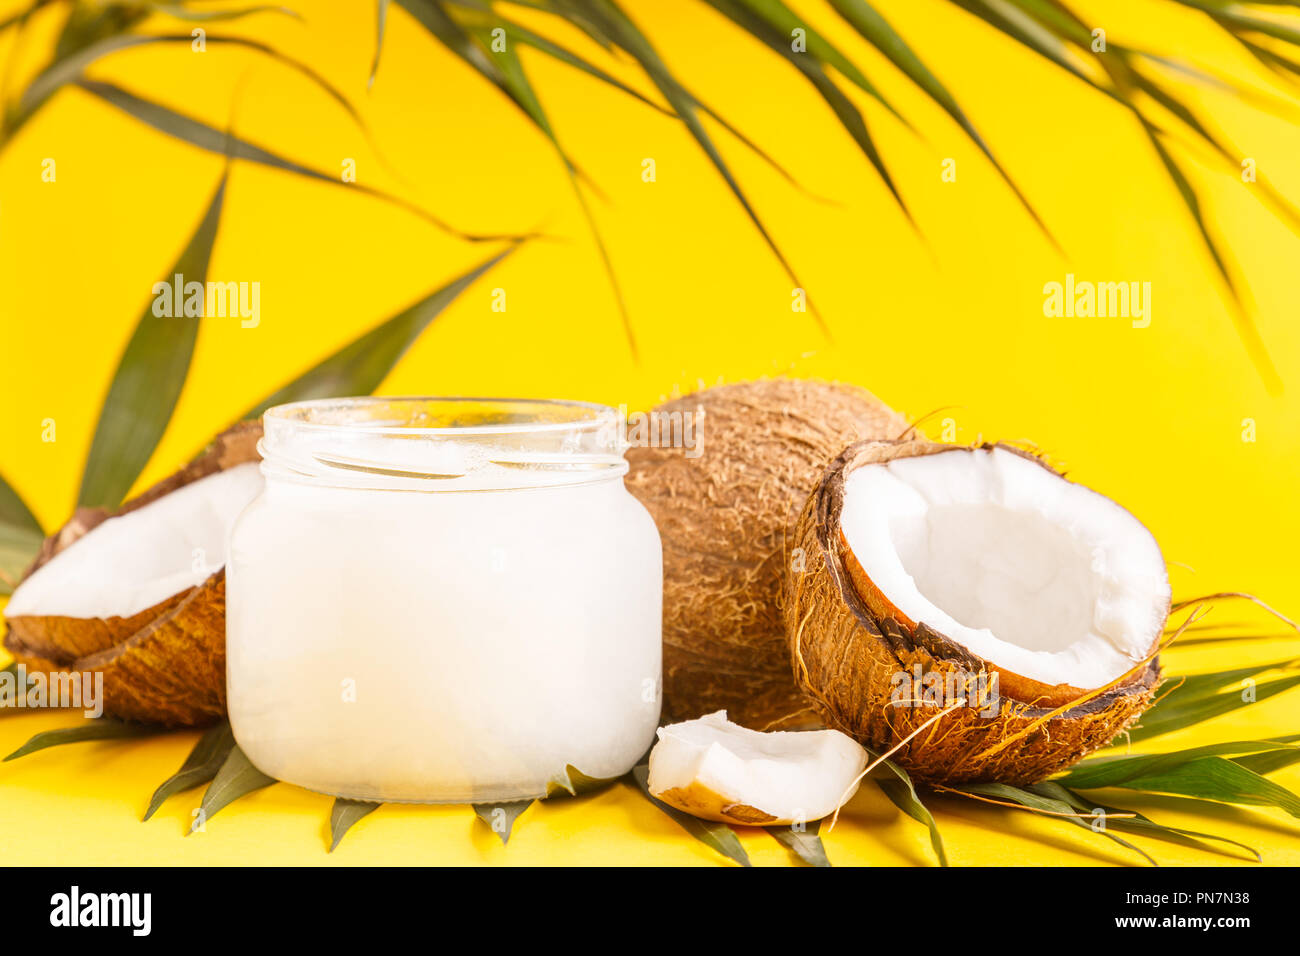 Coconut oil and coconuts on a bright pastel background, selective focus. Stock Photo